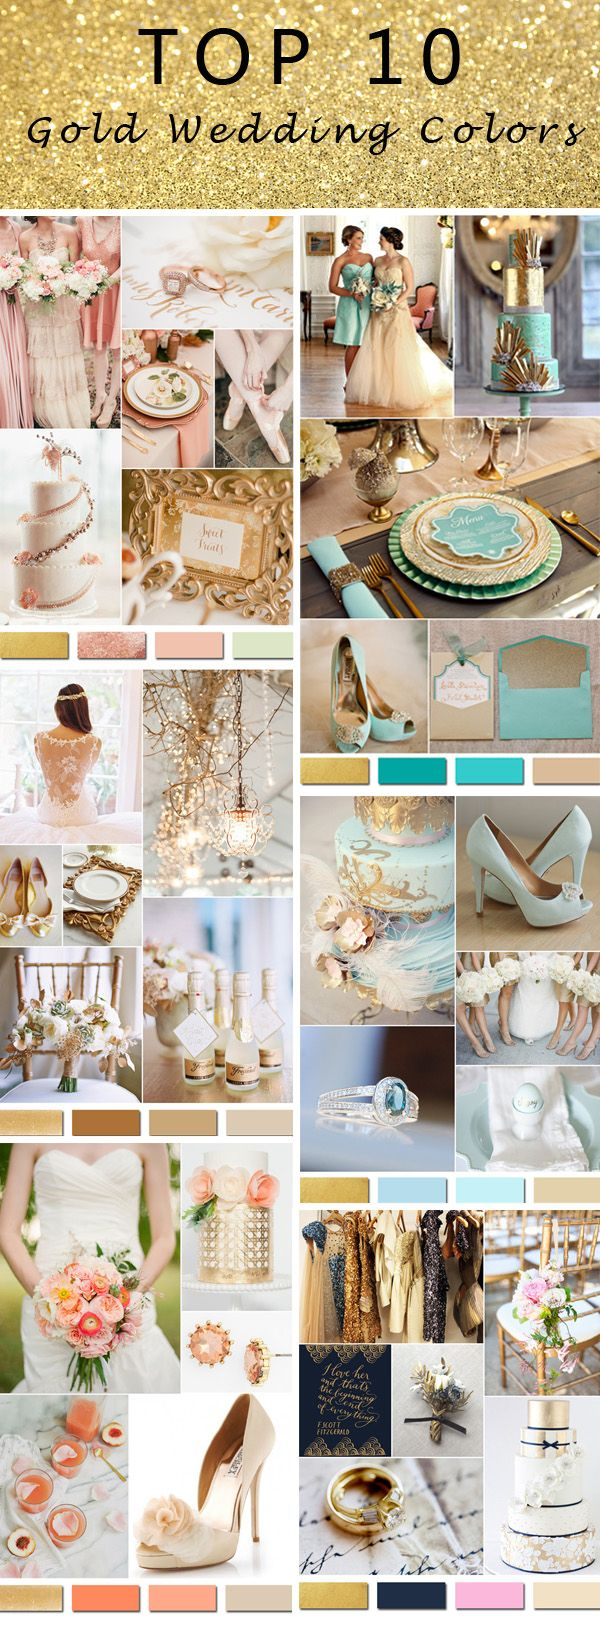 Top 10 Gold Wedding Colors-gold and teal, rose gold, gold and blue, gold and…